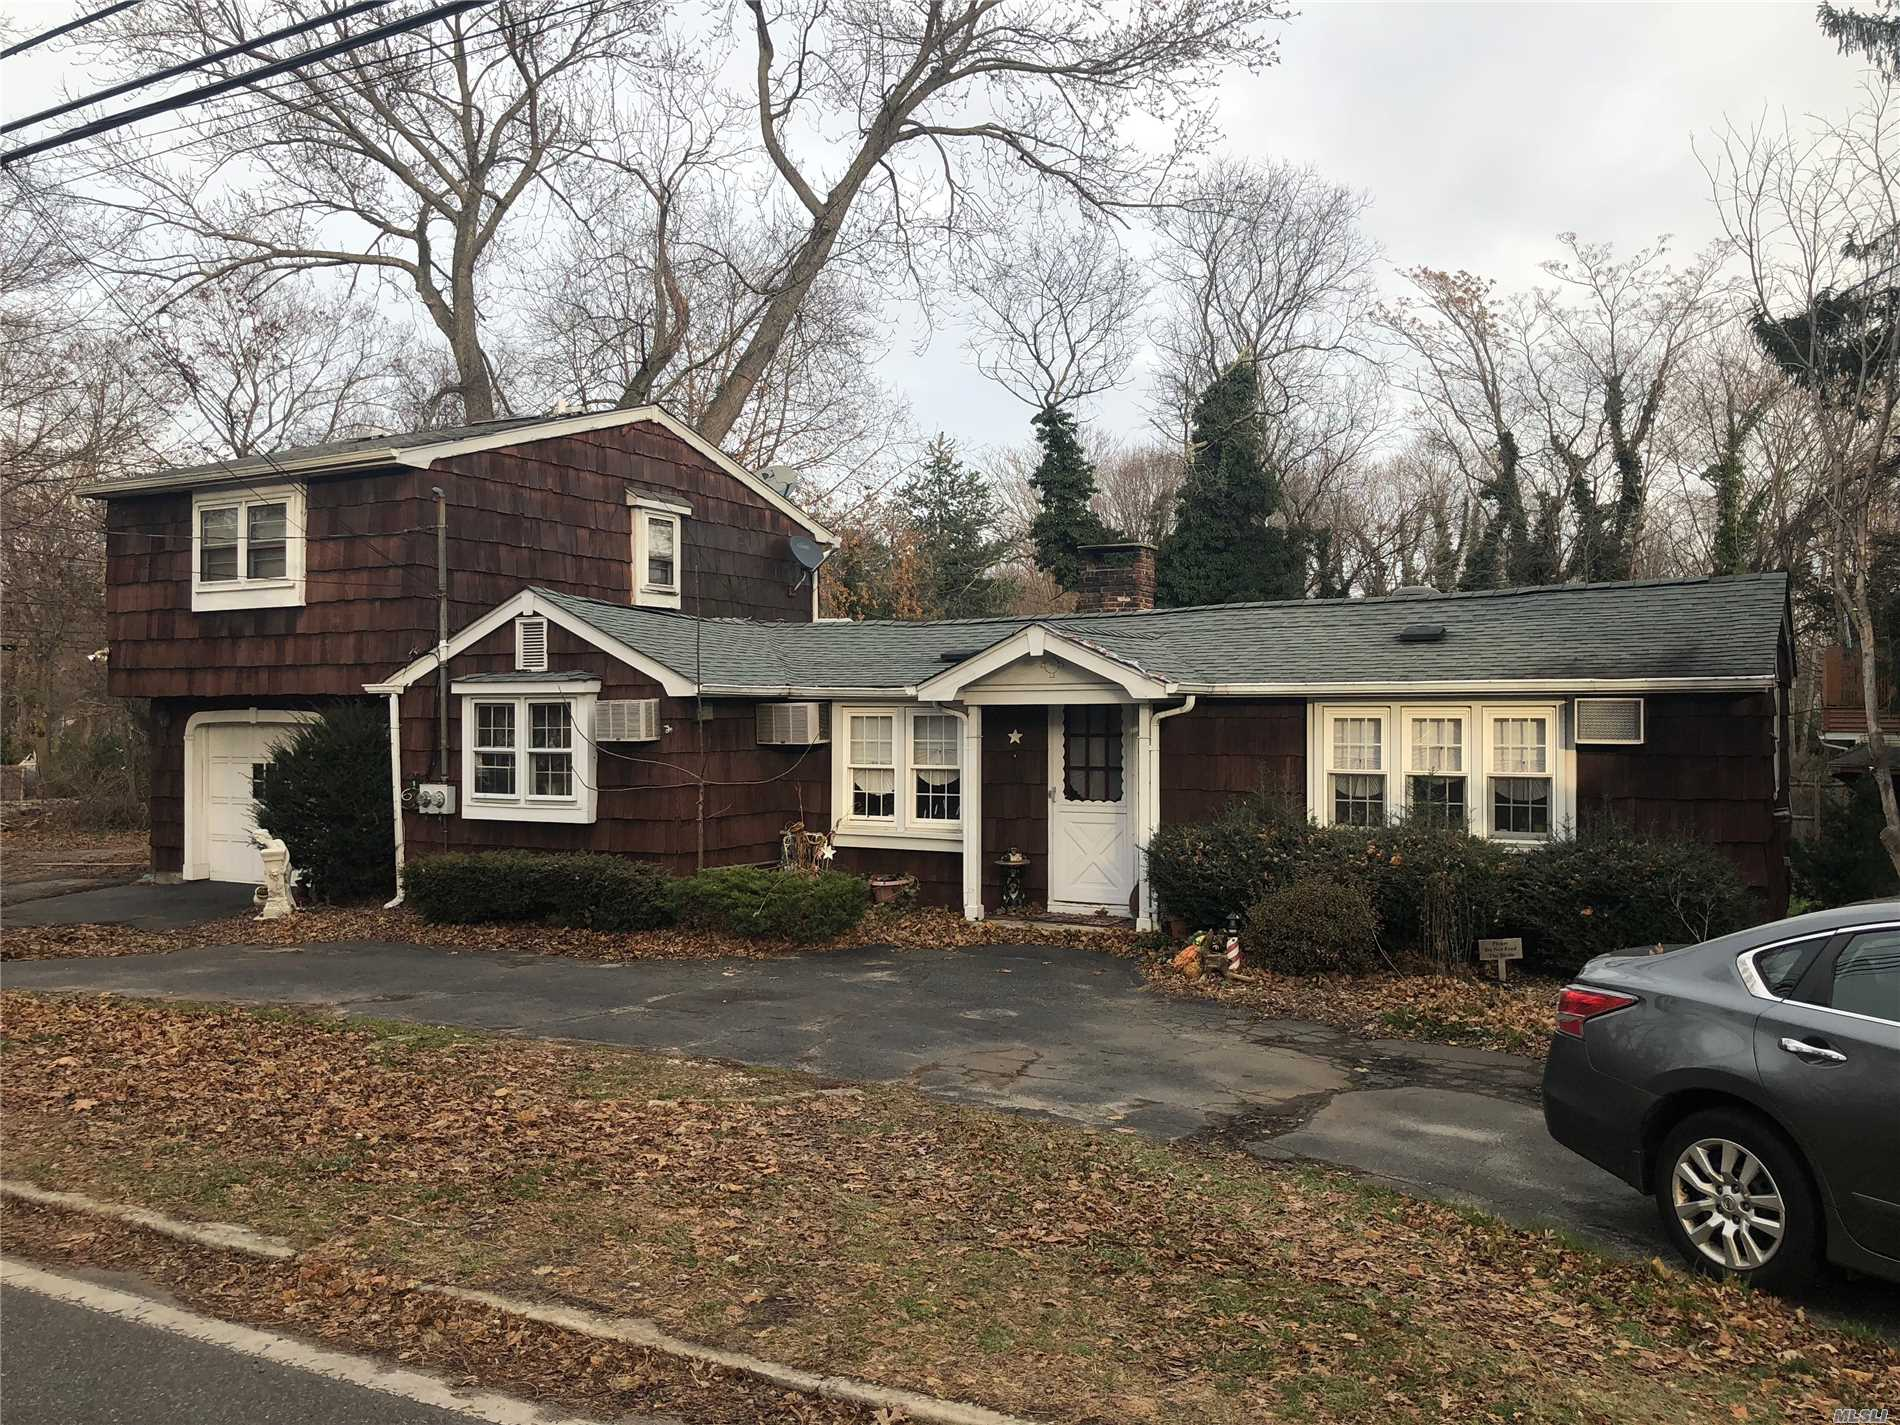 This Home Has A Lot Of Potential. Located In Port Jefferson Village Close To Shopping, The Beach And Mather Hospital. House Is A Single Family With An Accessory Apartment Up Stairs. Great Price, Low Taxes, Will Not Last!